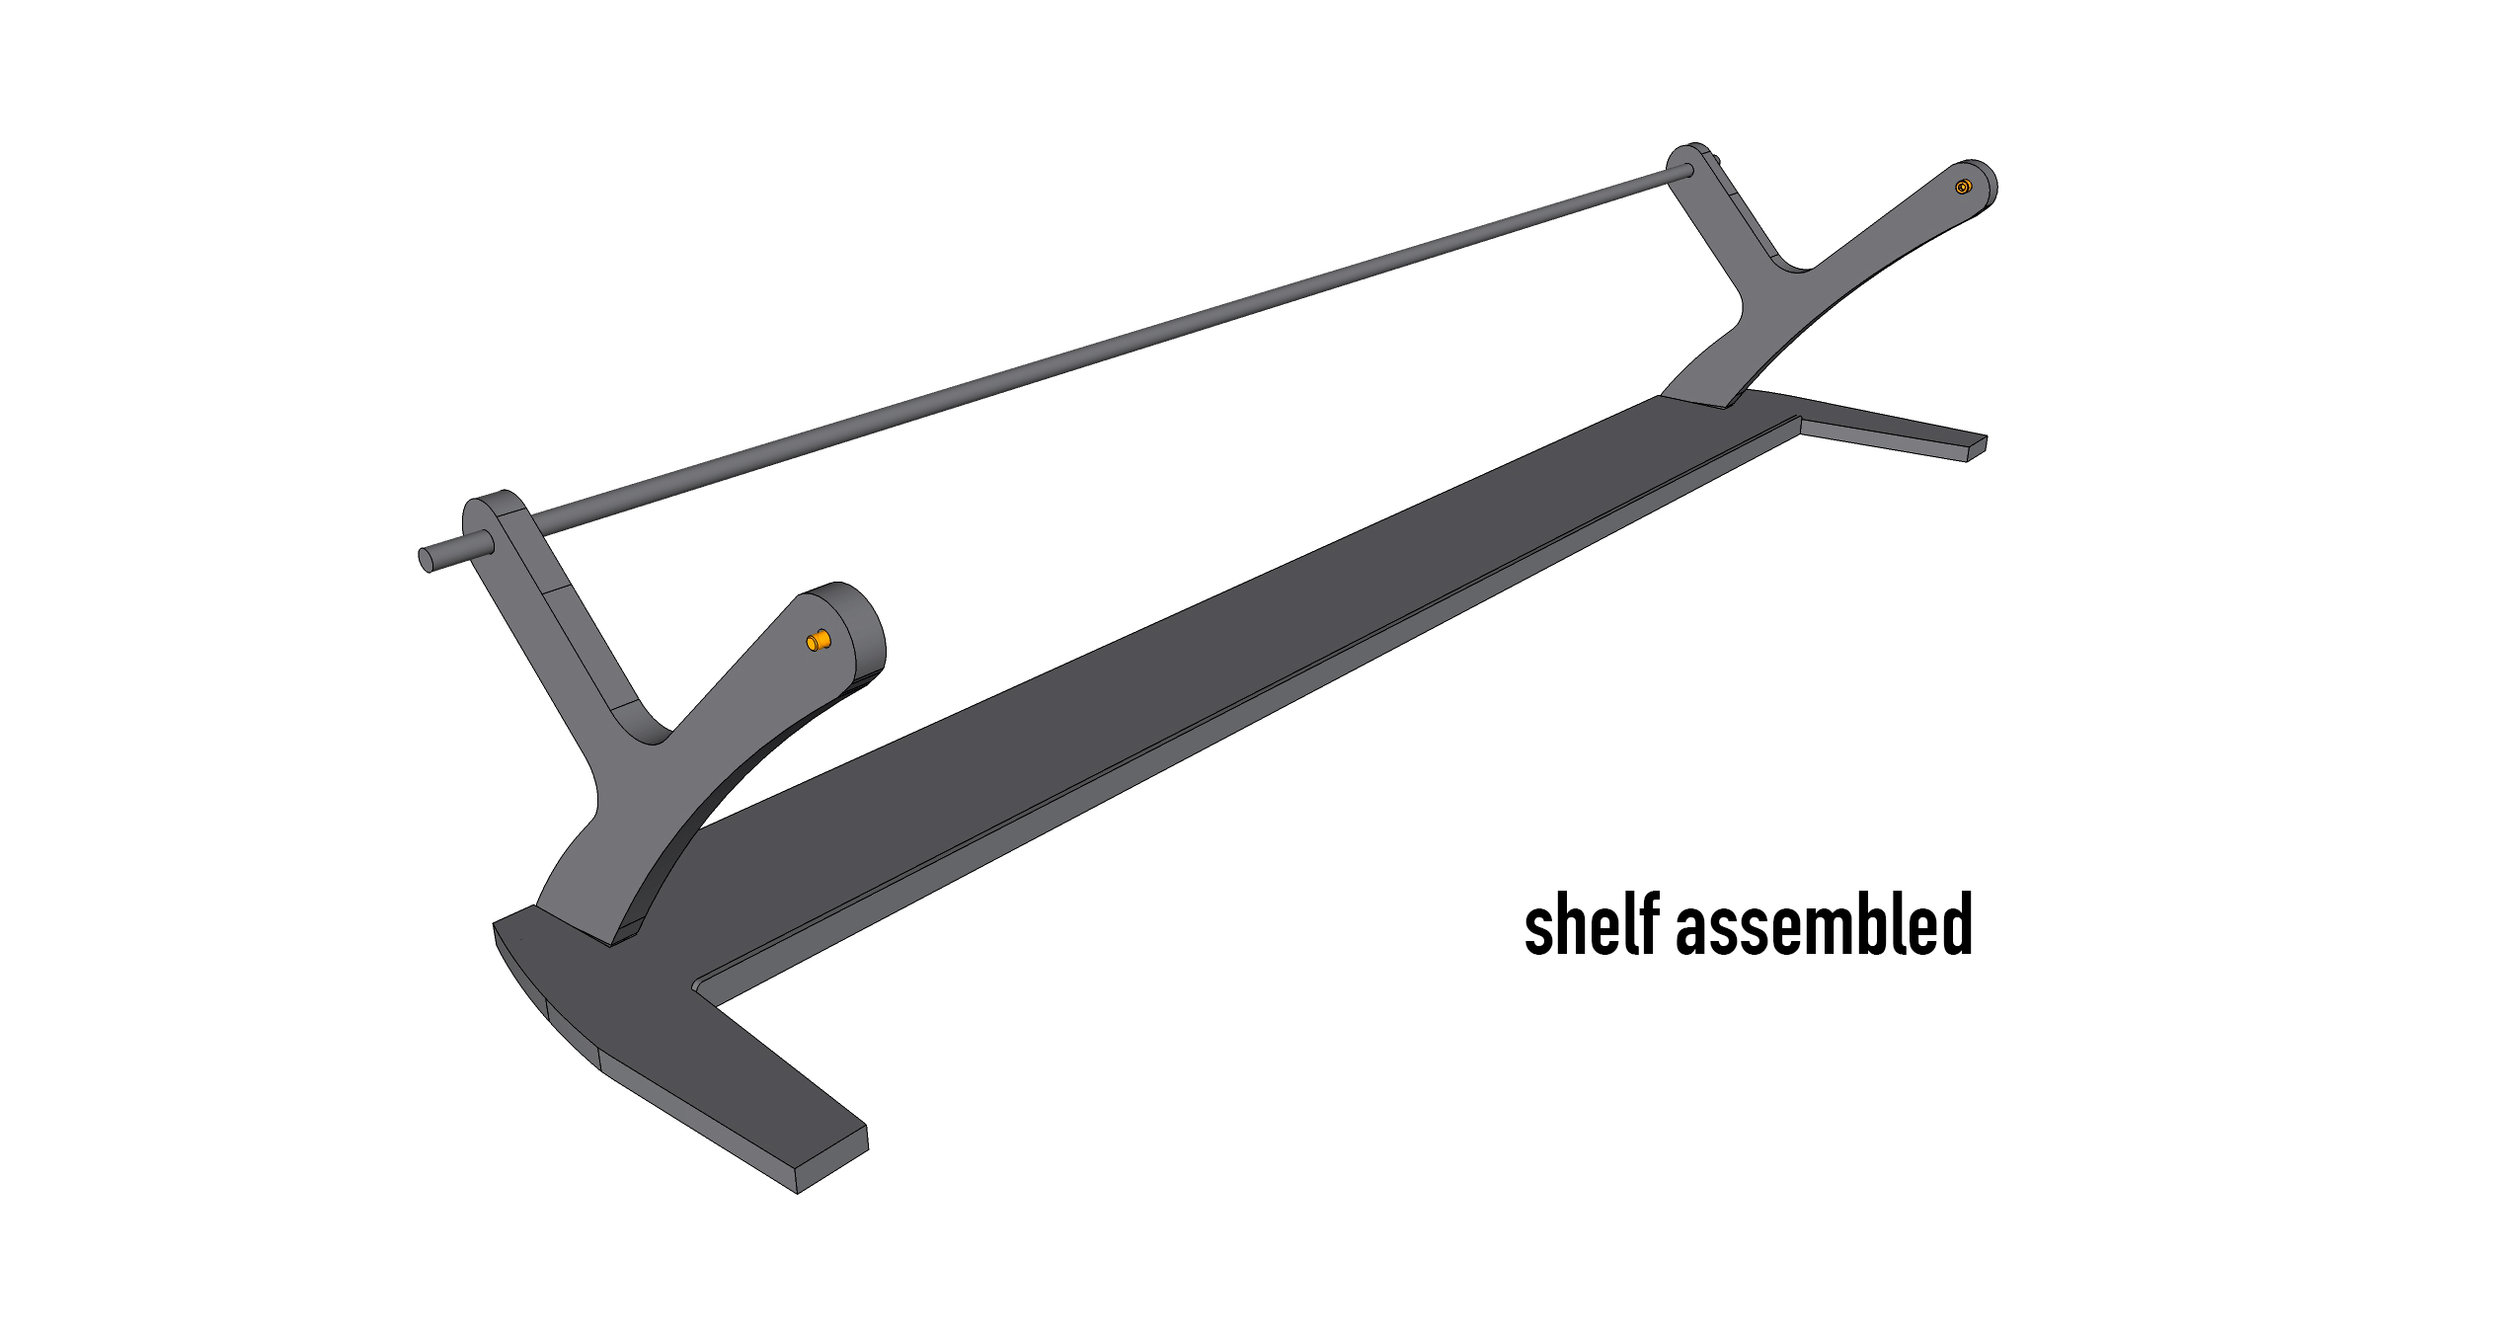 Assembled shelf should look like this. (pre-setting the thumbscrews can be helpful)